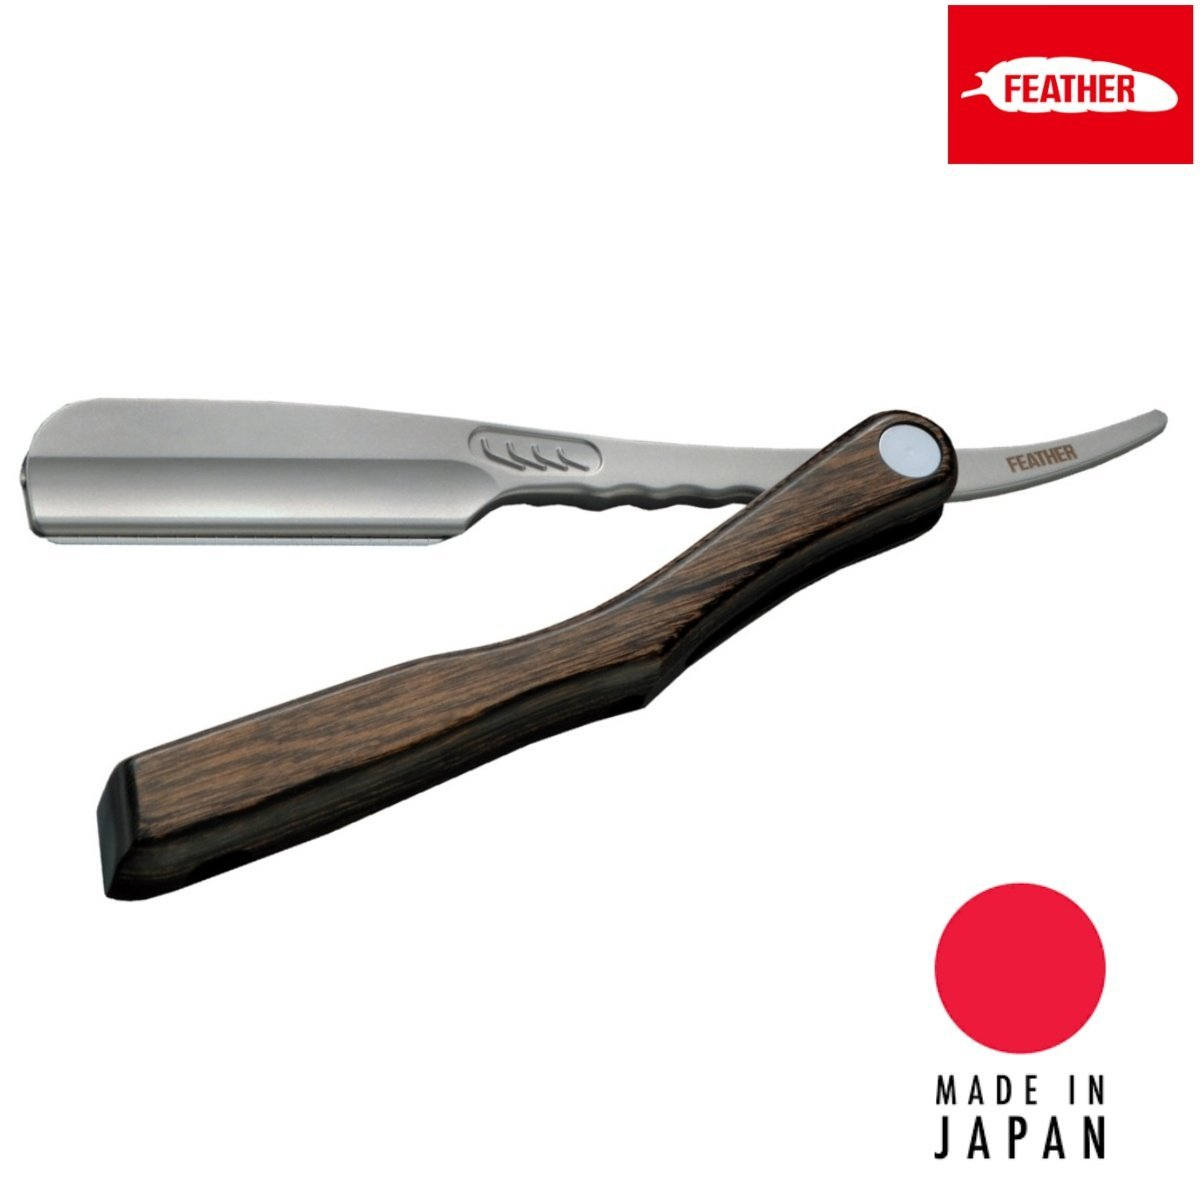 Feather Japan Artist Club SS Wooden Folding Razor - Japan Scissors